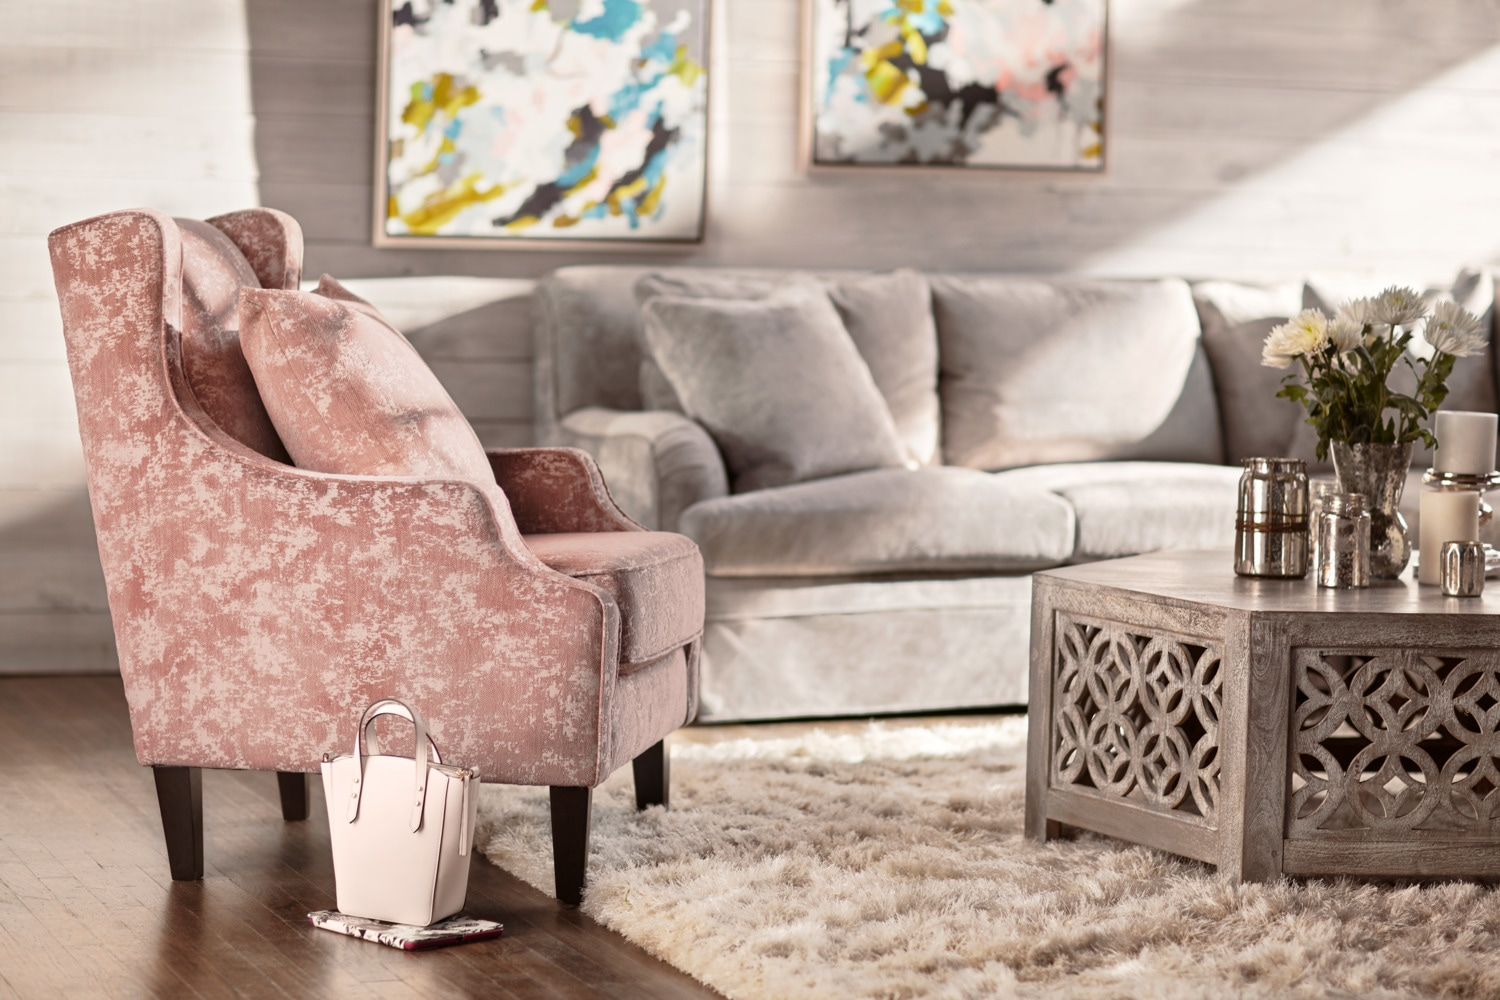 campbell accent chair blush value city furniture and mattresses chairs with table click change hairpin legs ikea pottery barn glass top coffee wooden lamps for living room uma